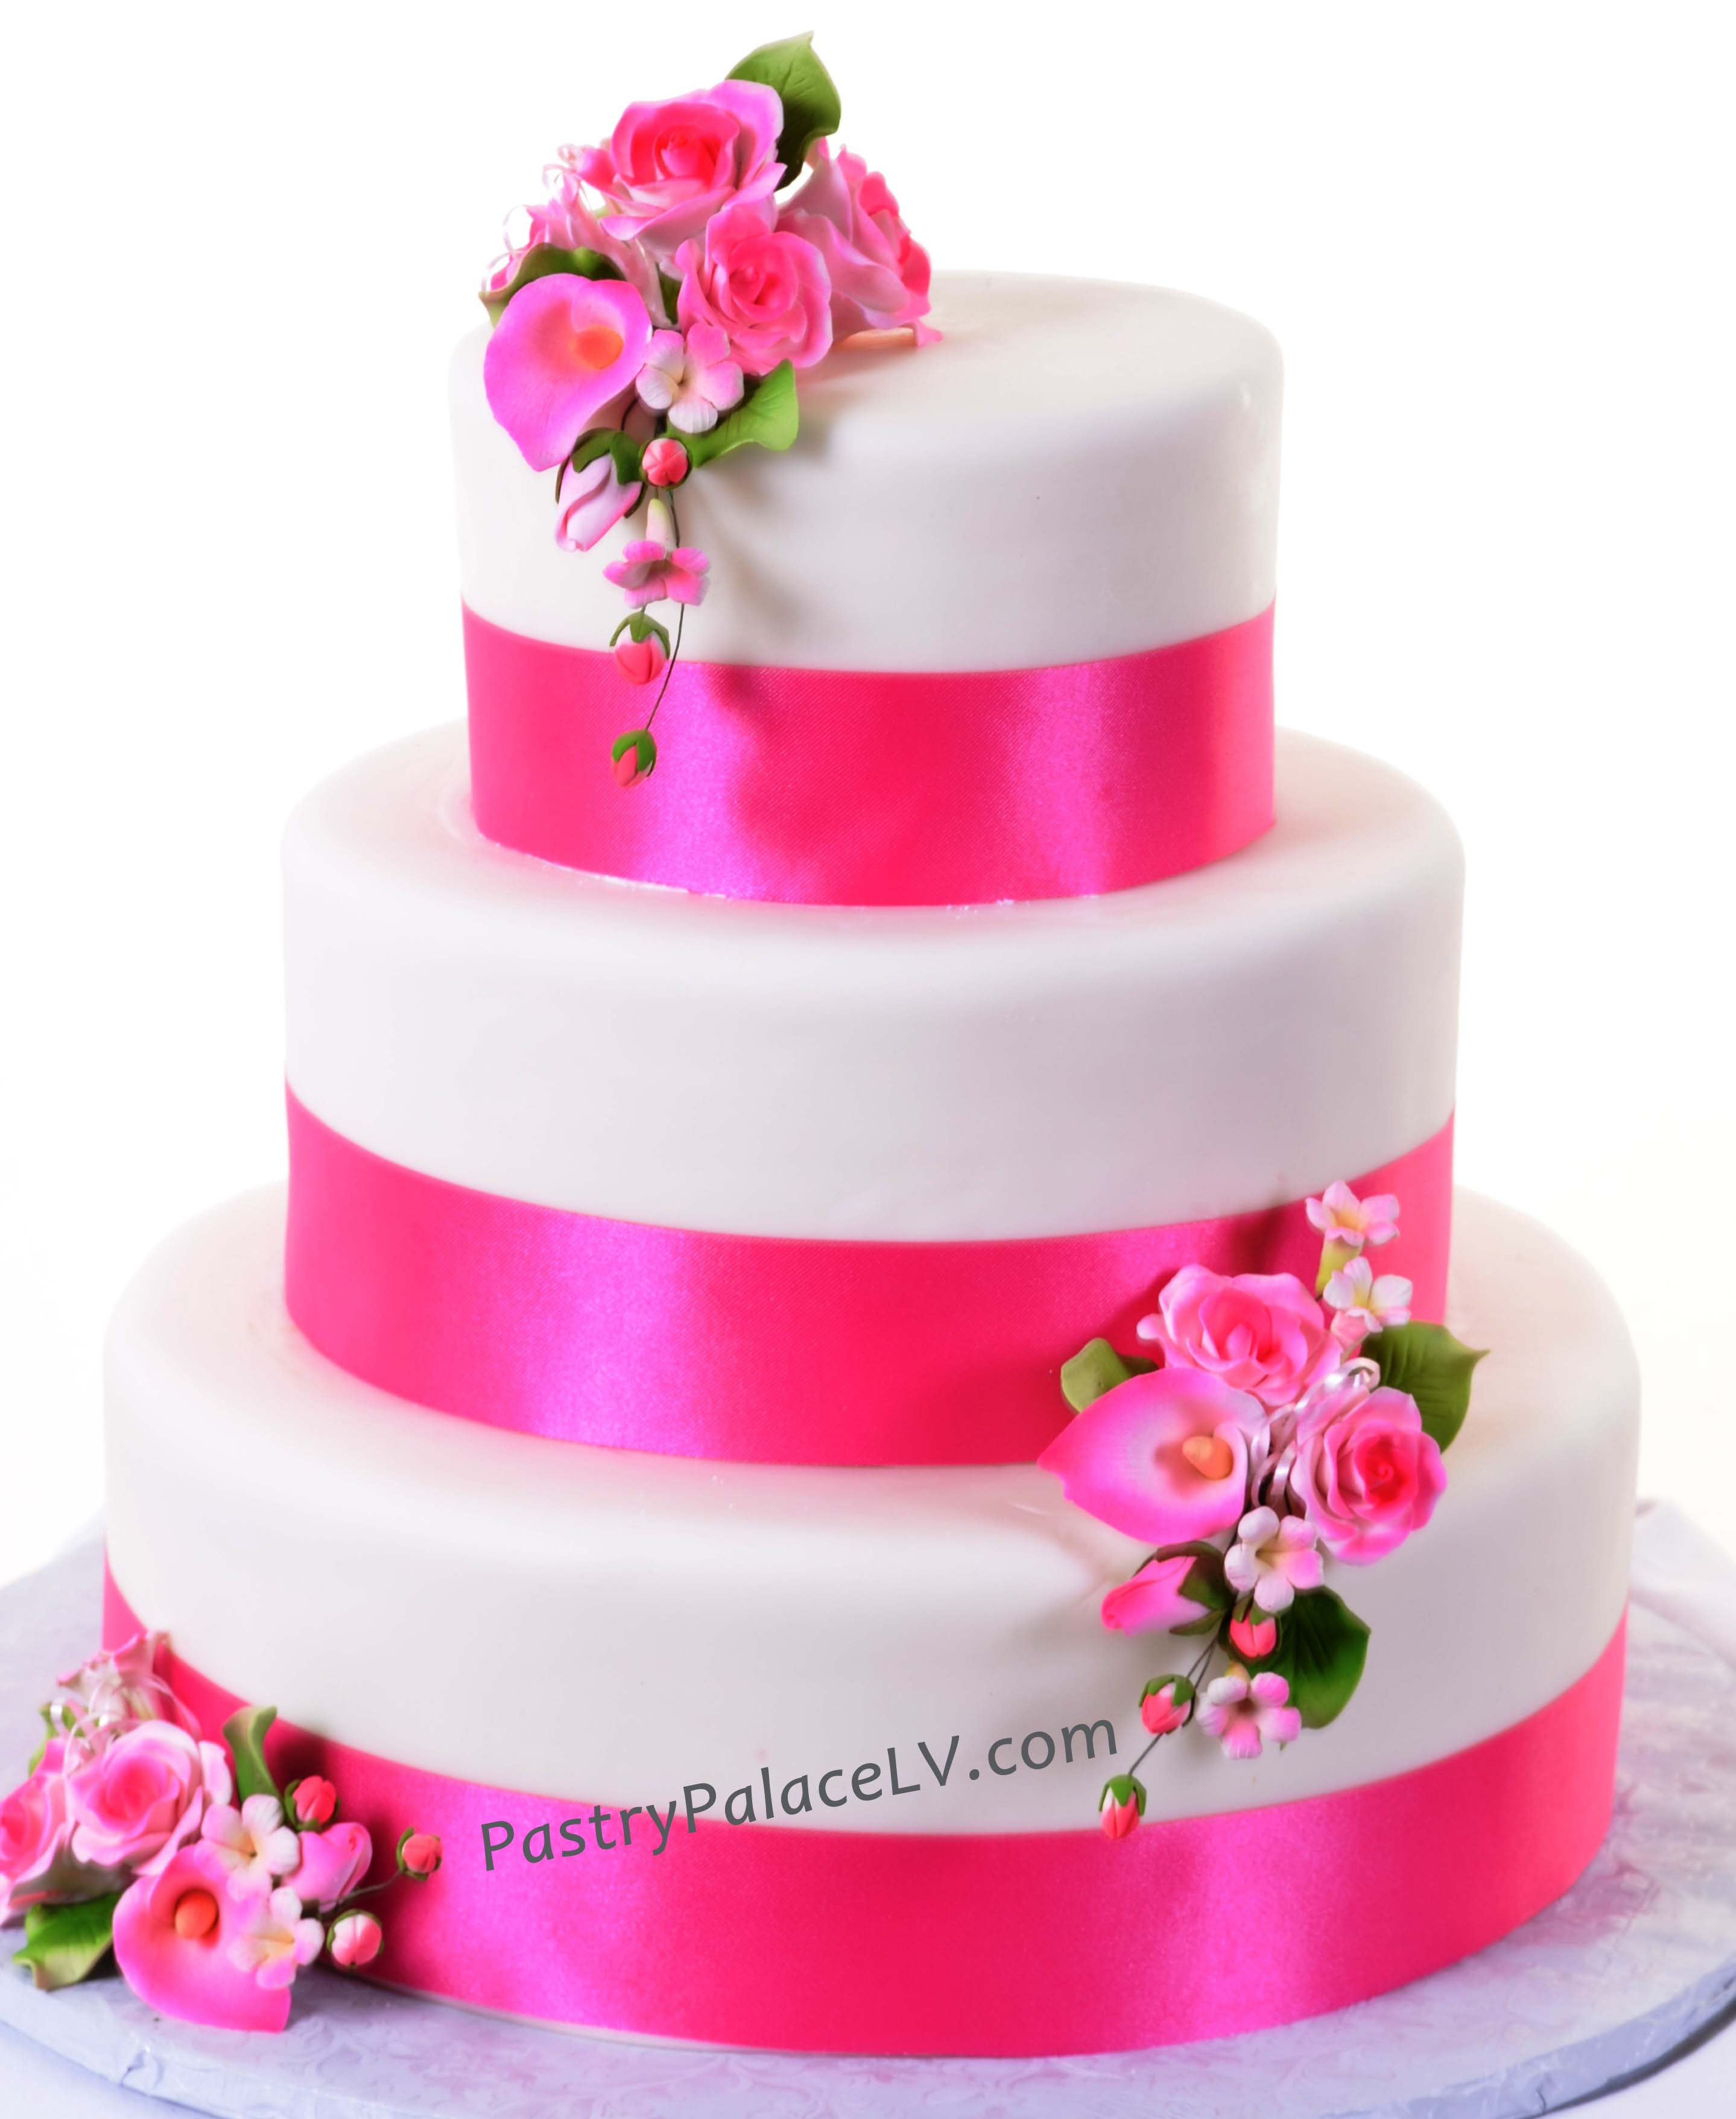 Pastry Palace Las Vegas - Cake 931 - Pretty In Pink